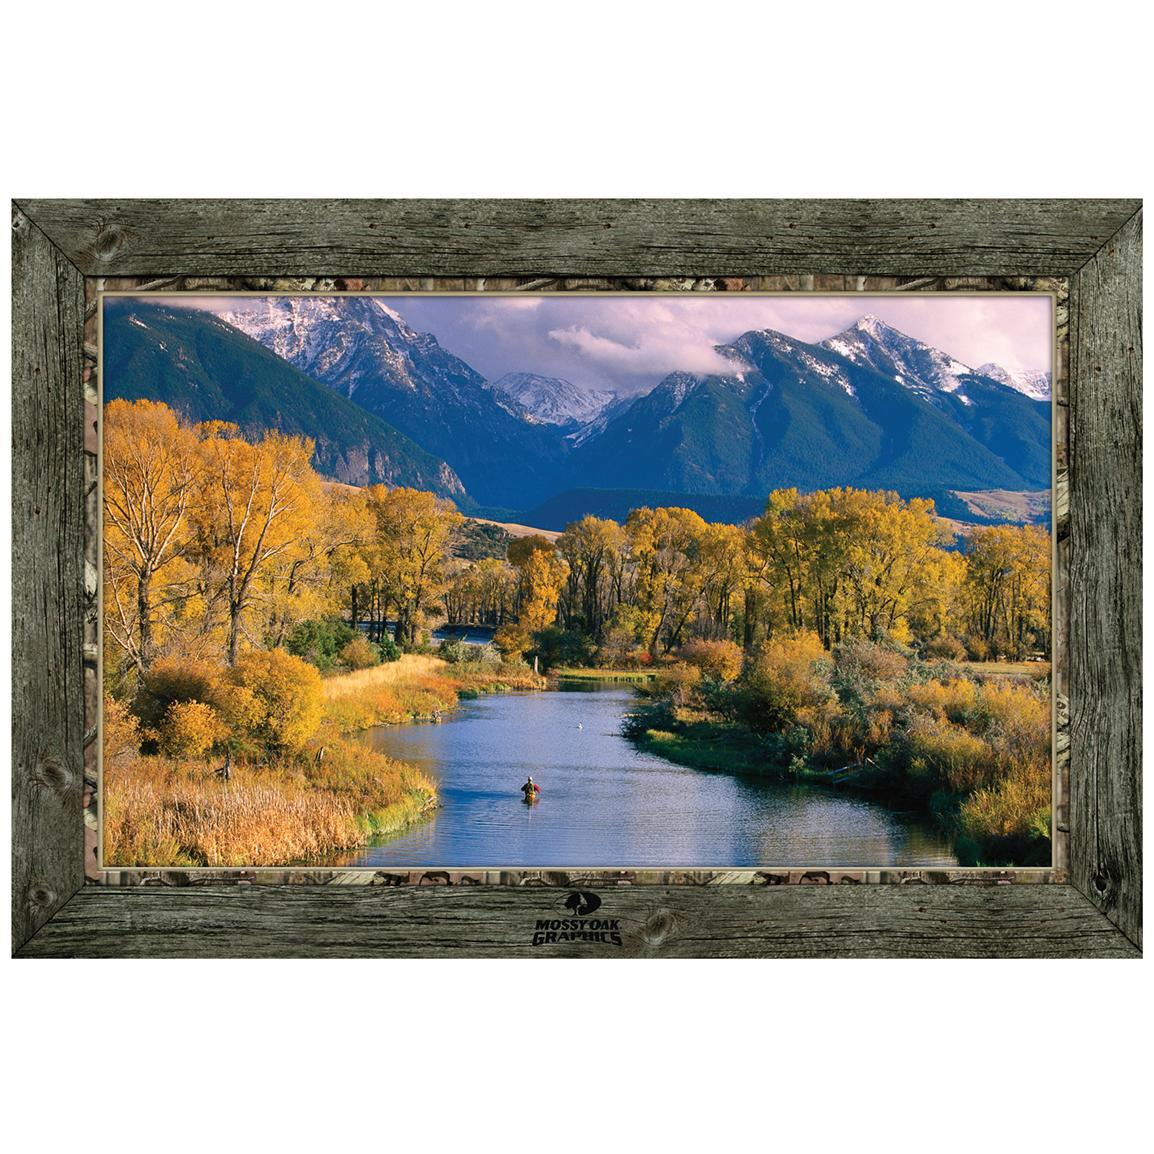 """Fisherman in River with Mountain View"" Framed Indoor Wall Graphic"